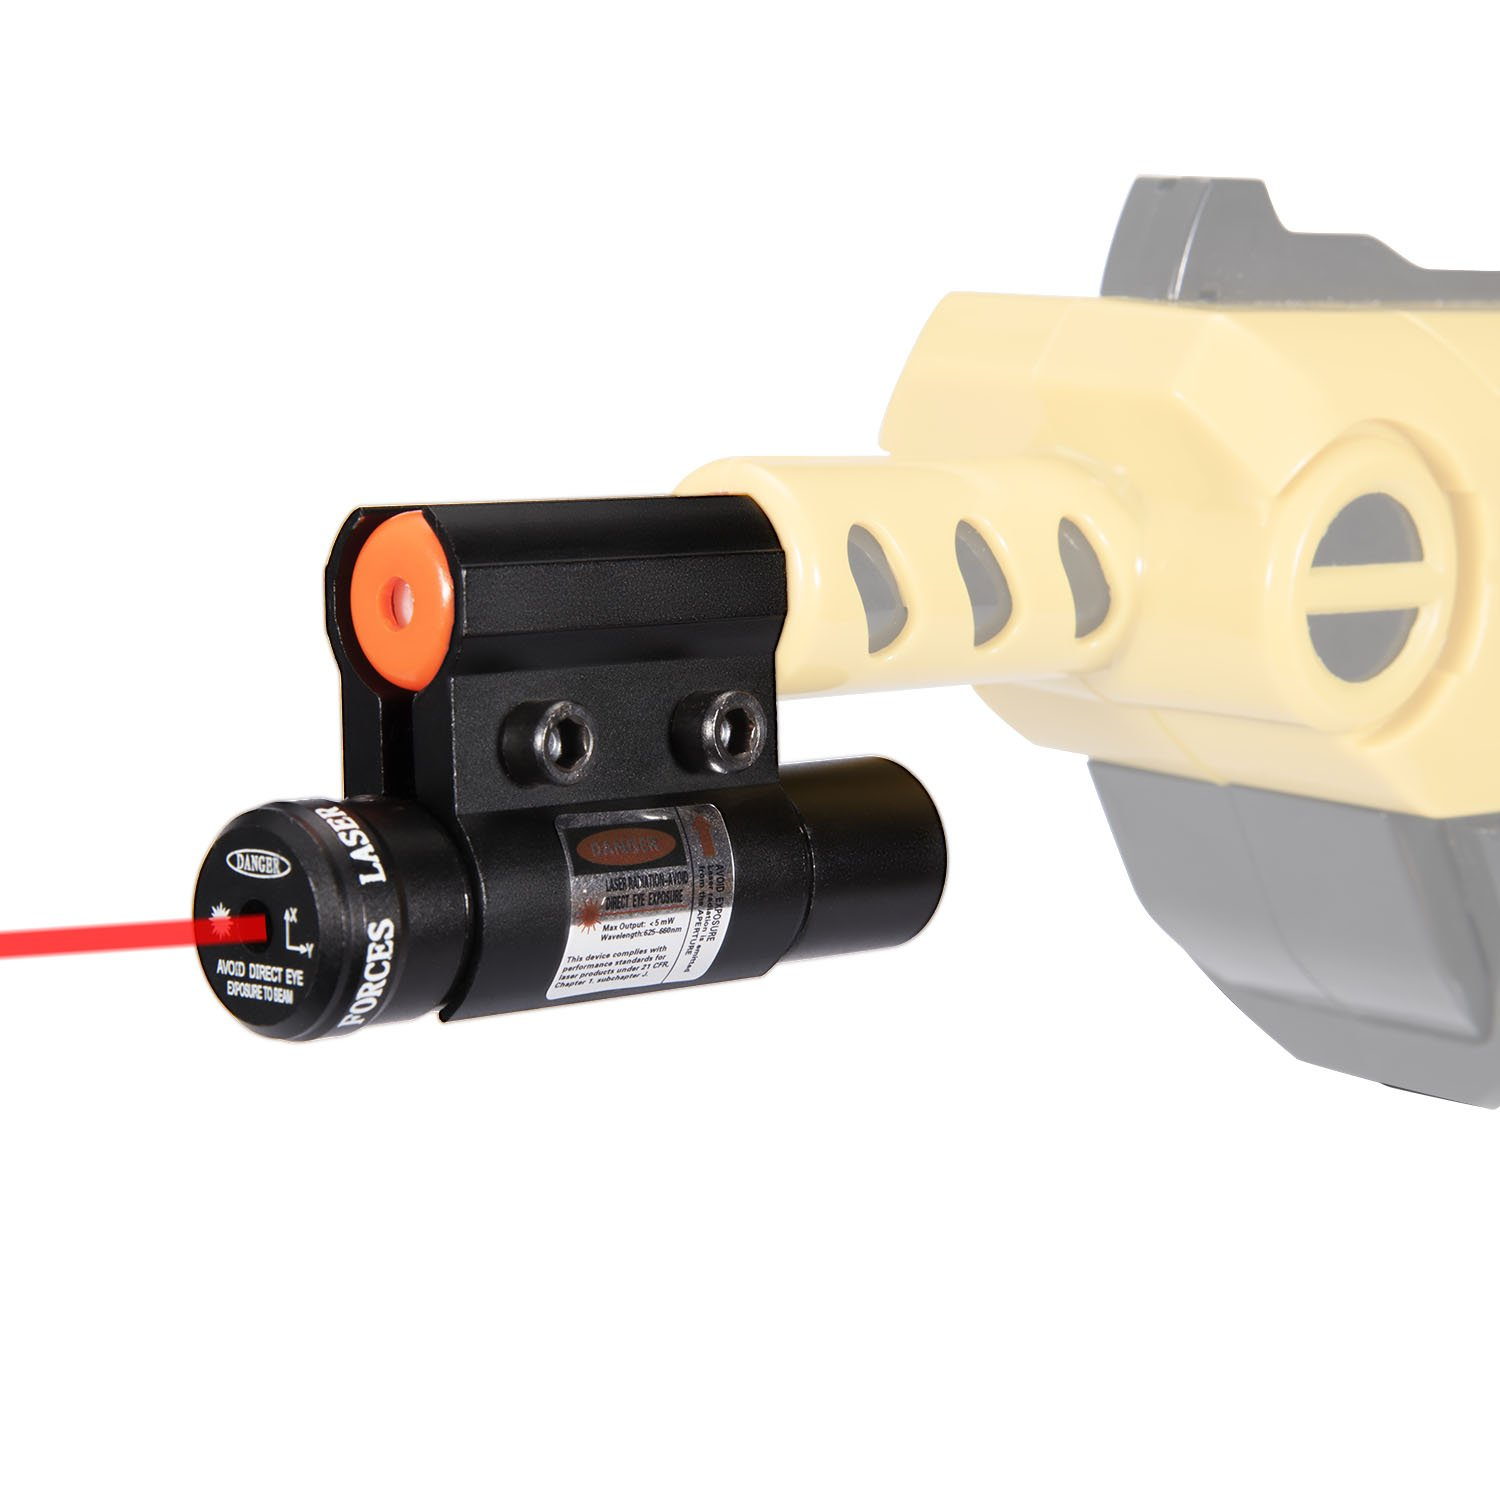 Deyard Laser Sight Insect Eradication Bug & A Fly Salt Shotgun Version 2.0 Lawn & Garden Eradication Beam Spot Aiming Sight in Red Color(Battery Included)